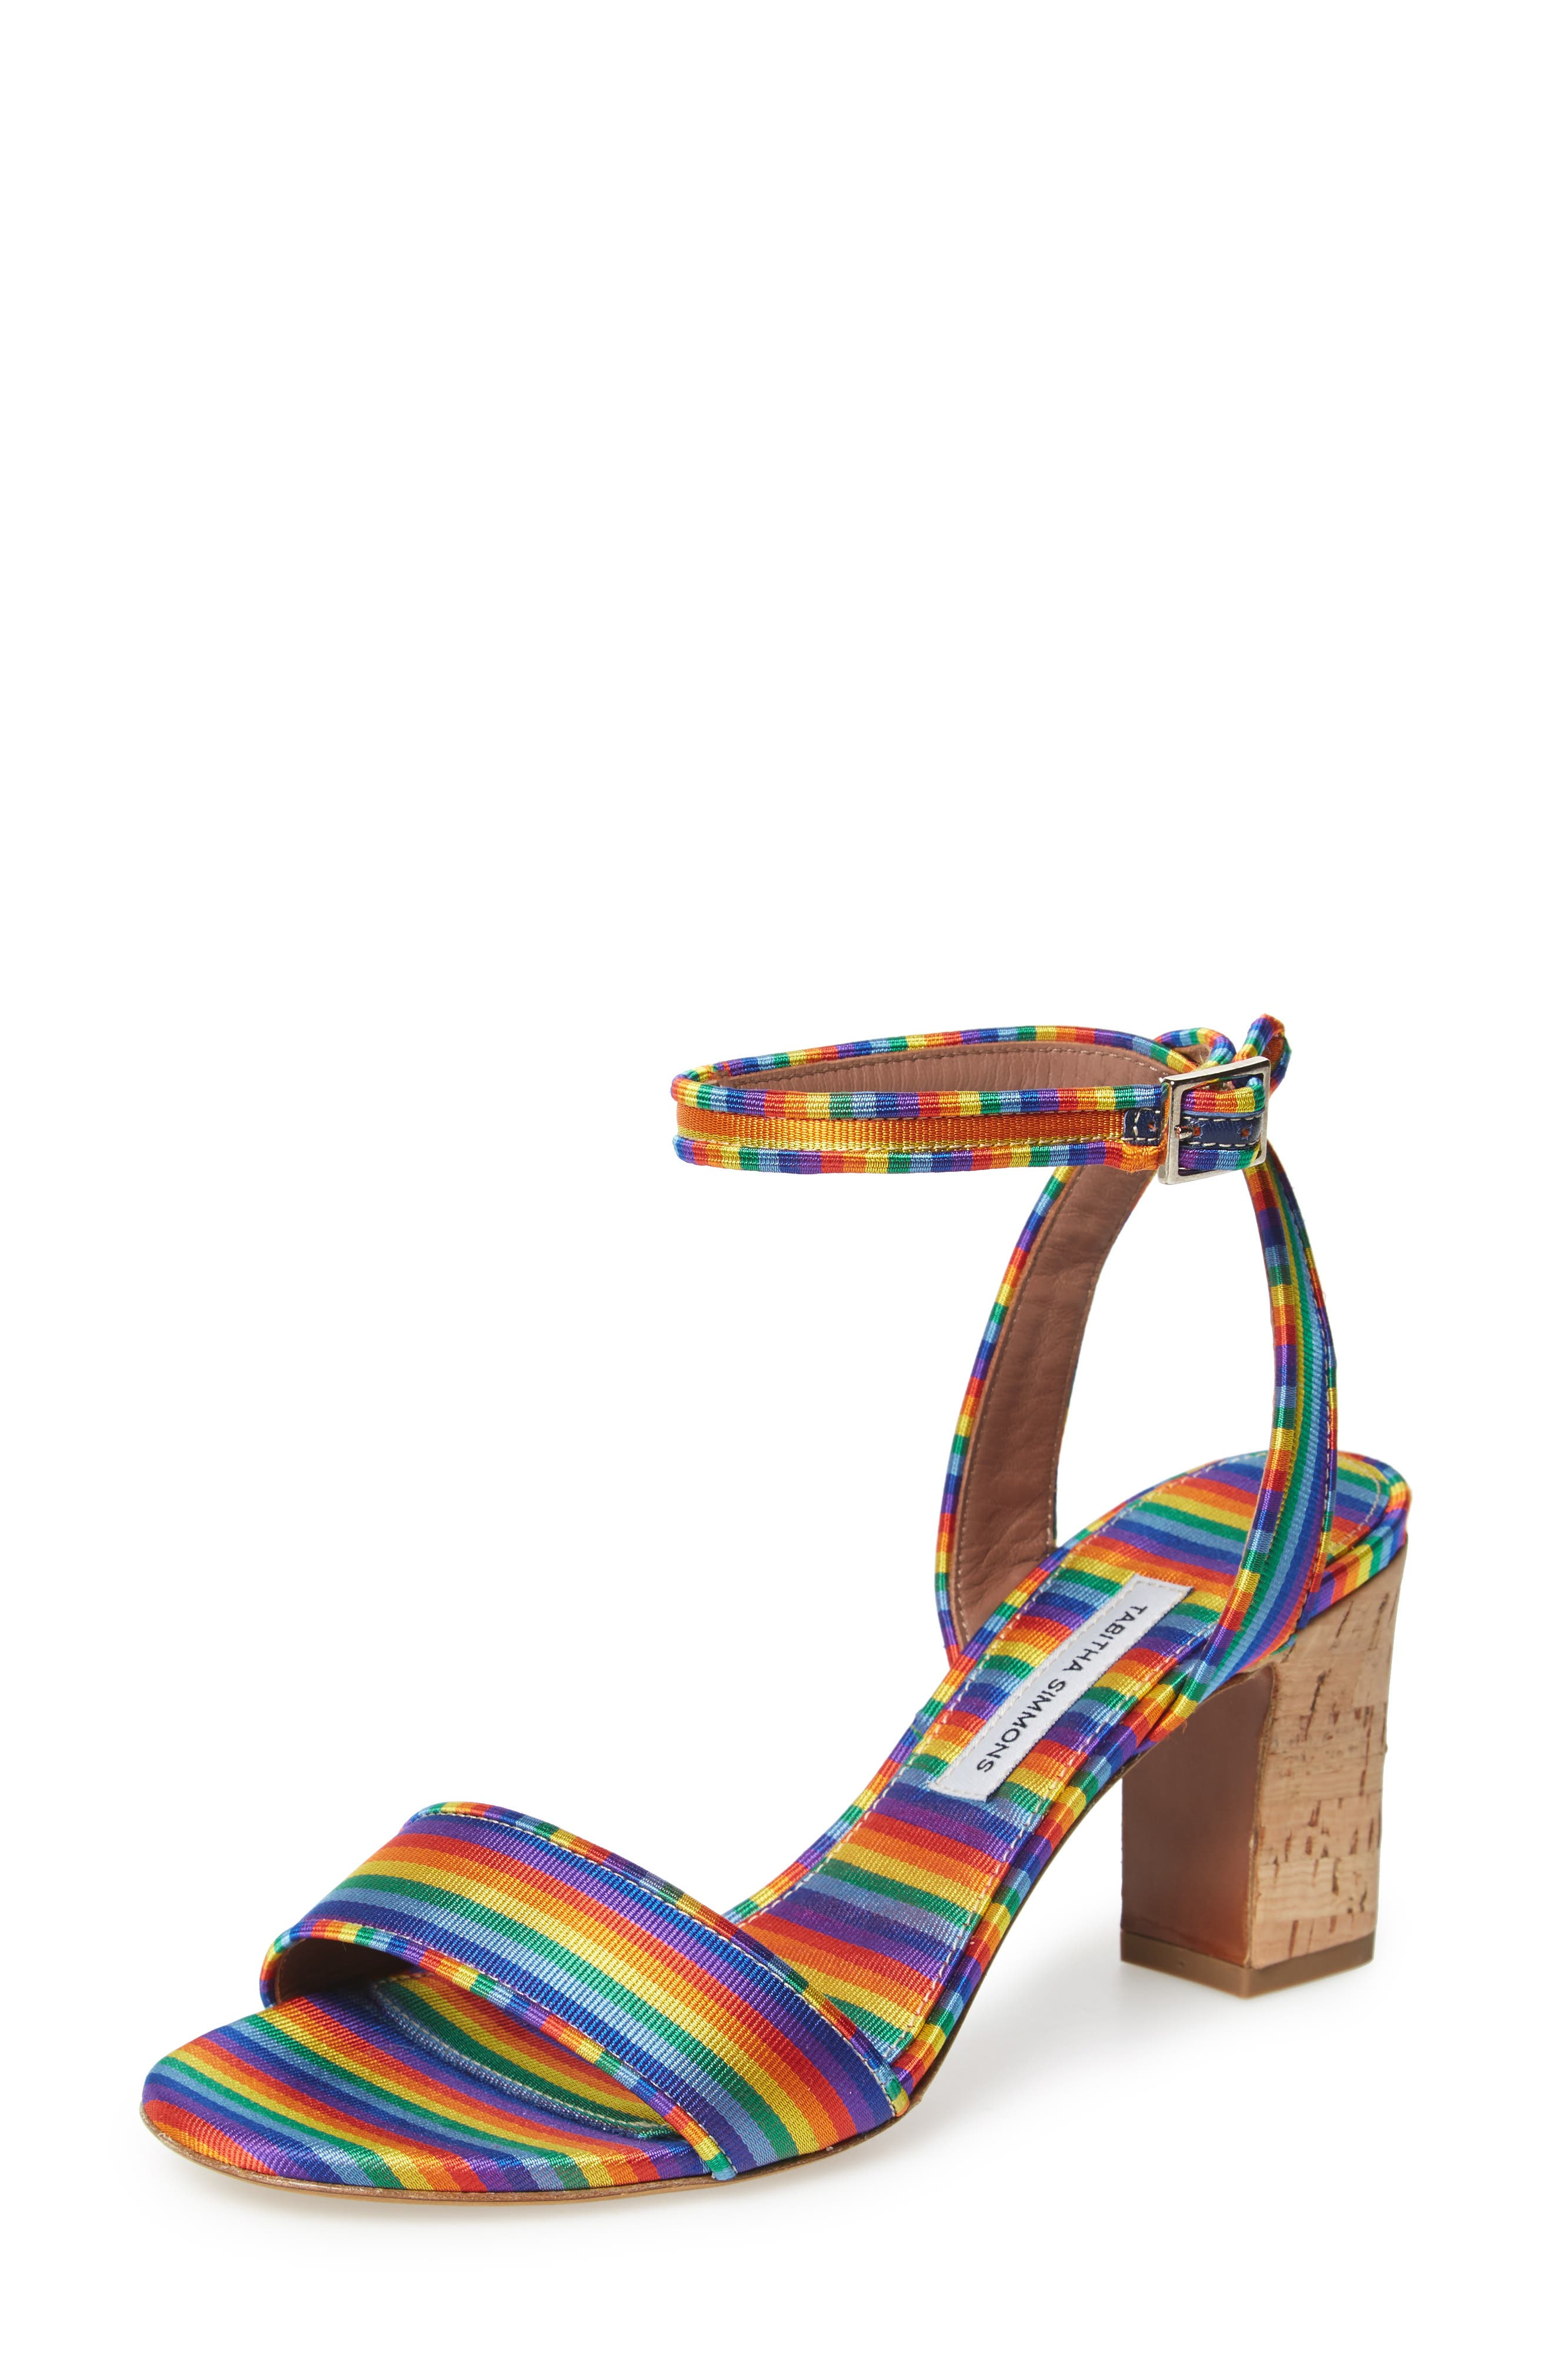 Leticia Cork Heel Sandal,                         Main,                         color, Rainbow